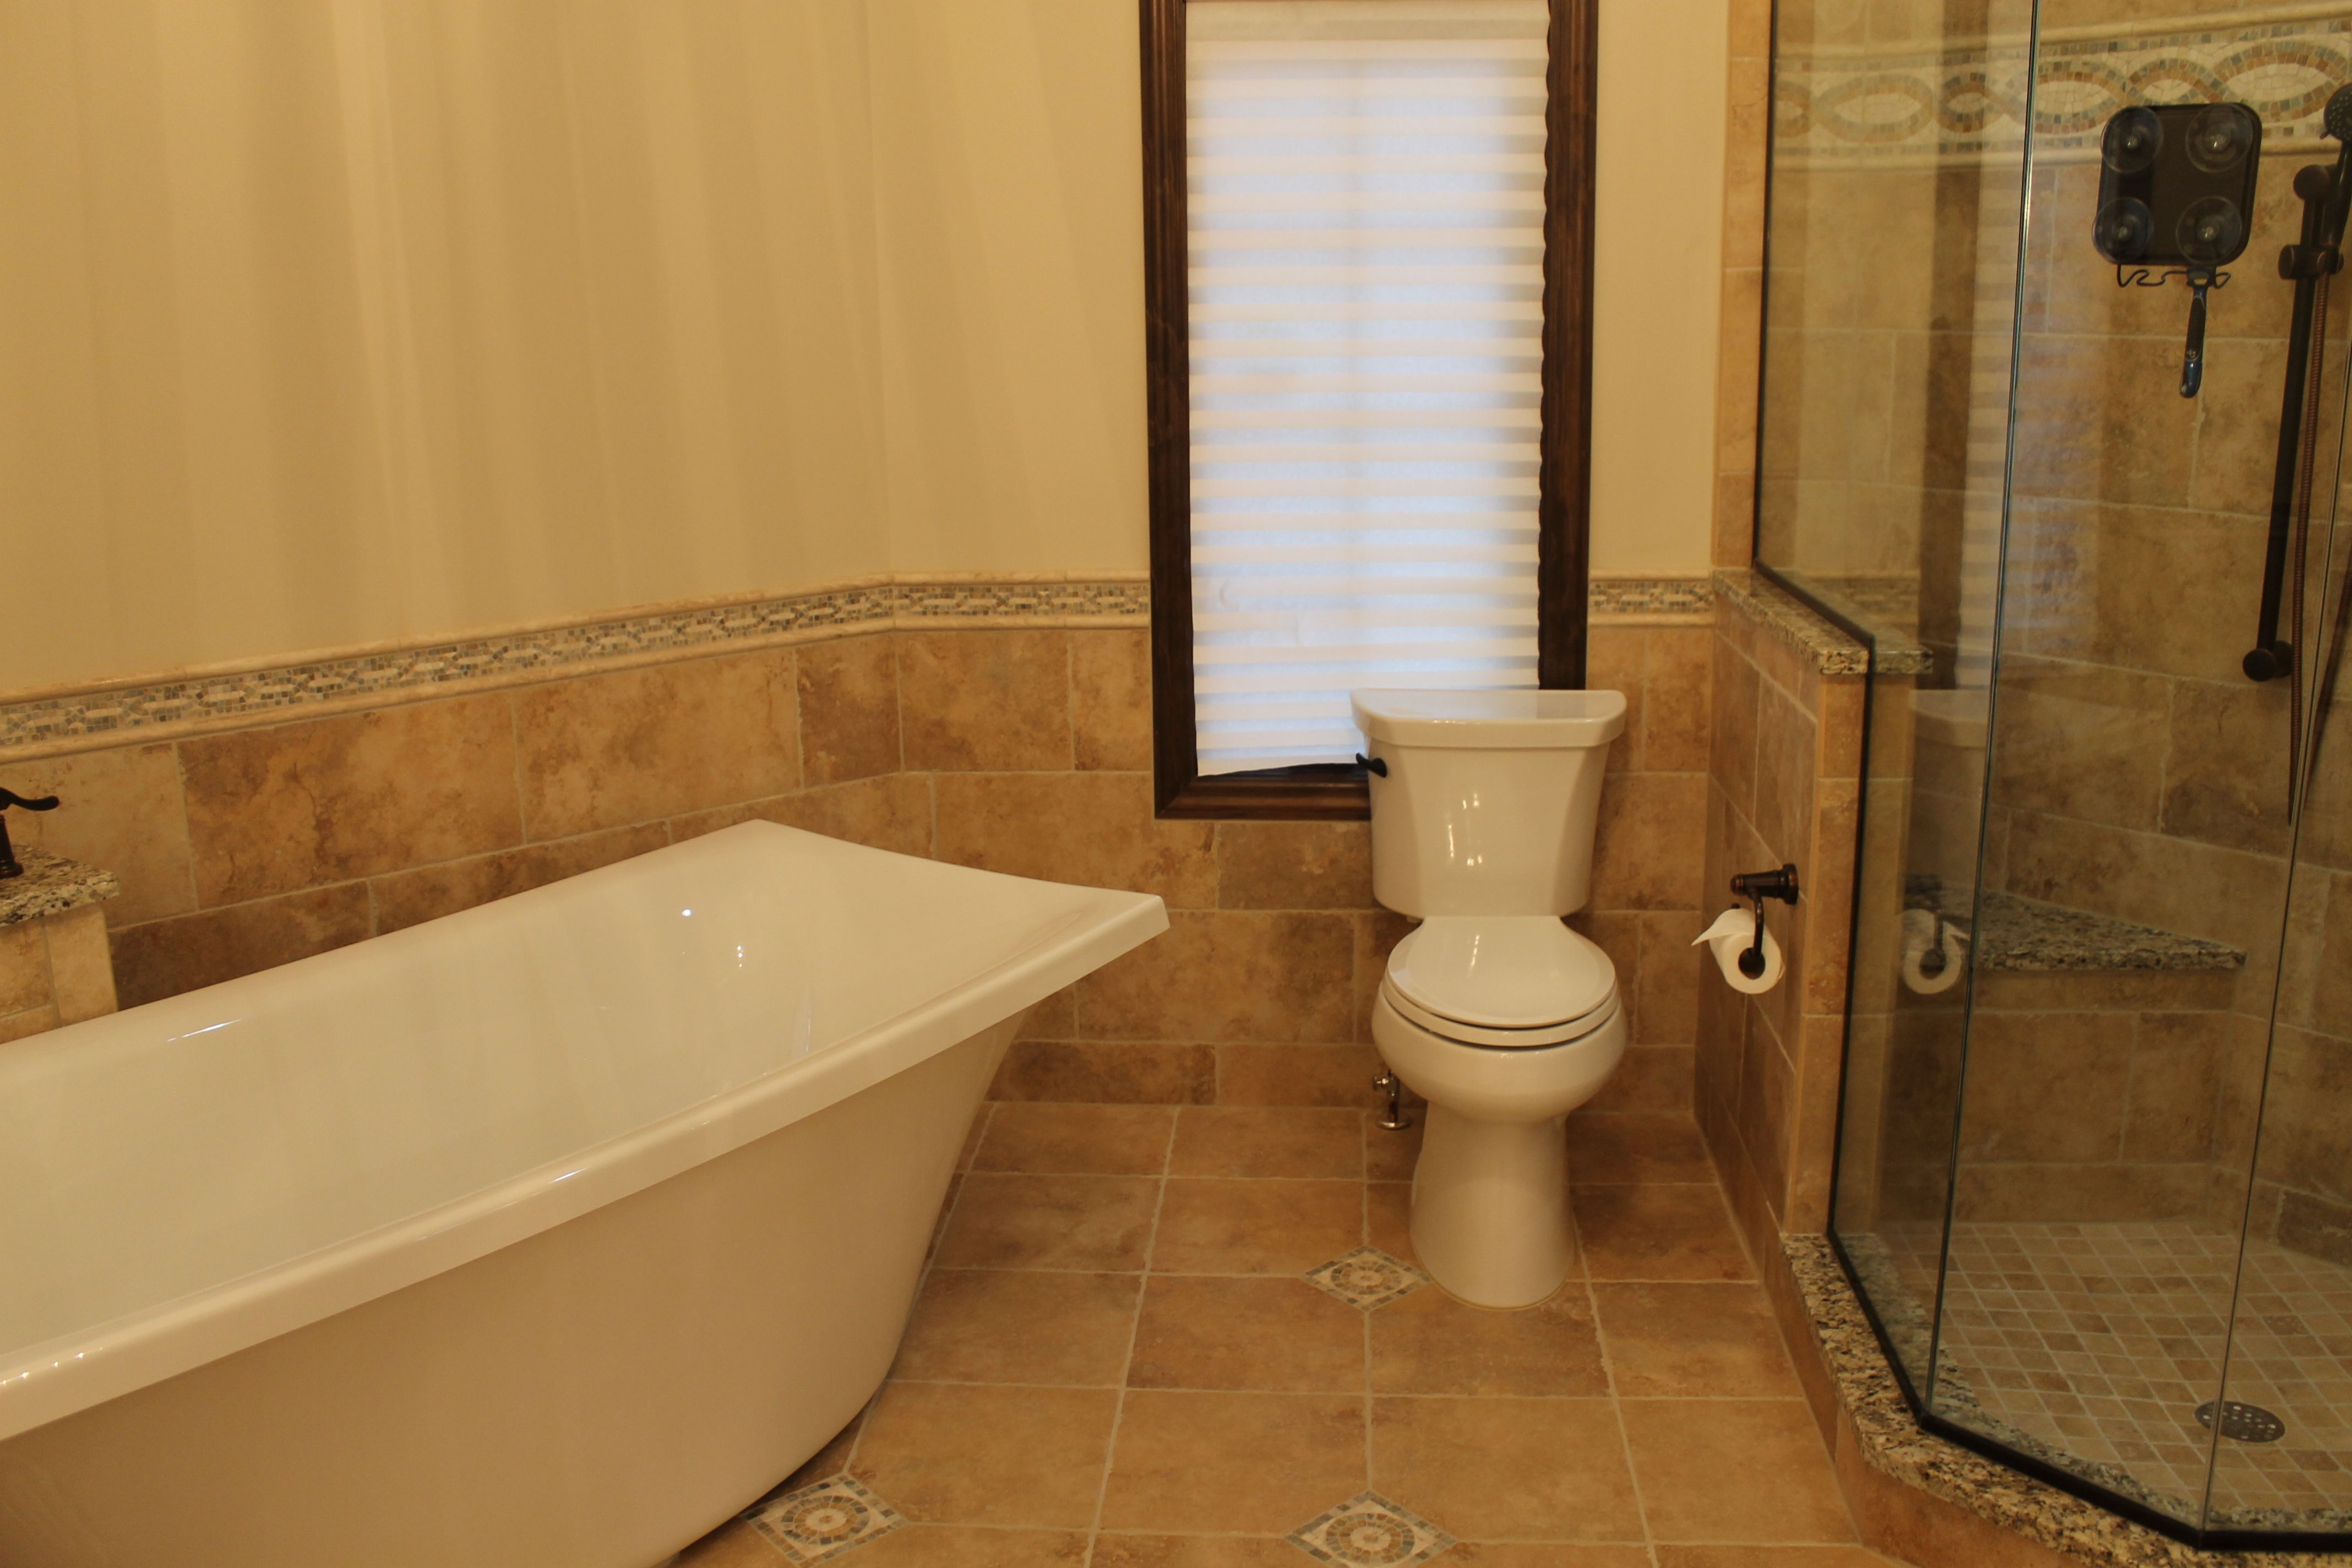 White Comfort Height Toilet between a Custom Tiled Shower and a ...